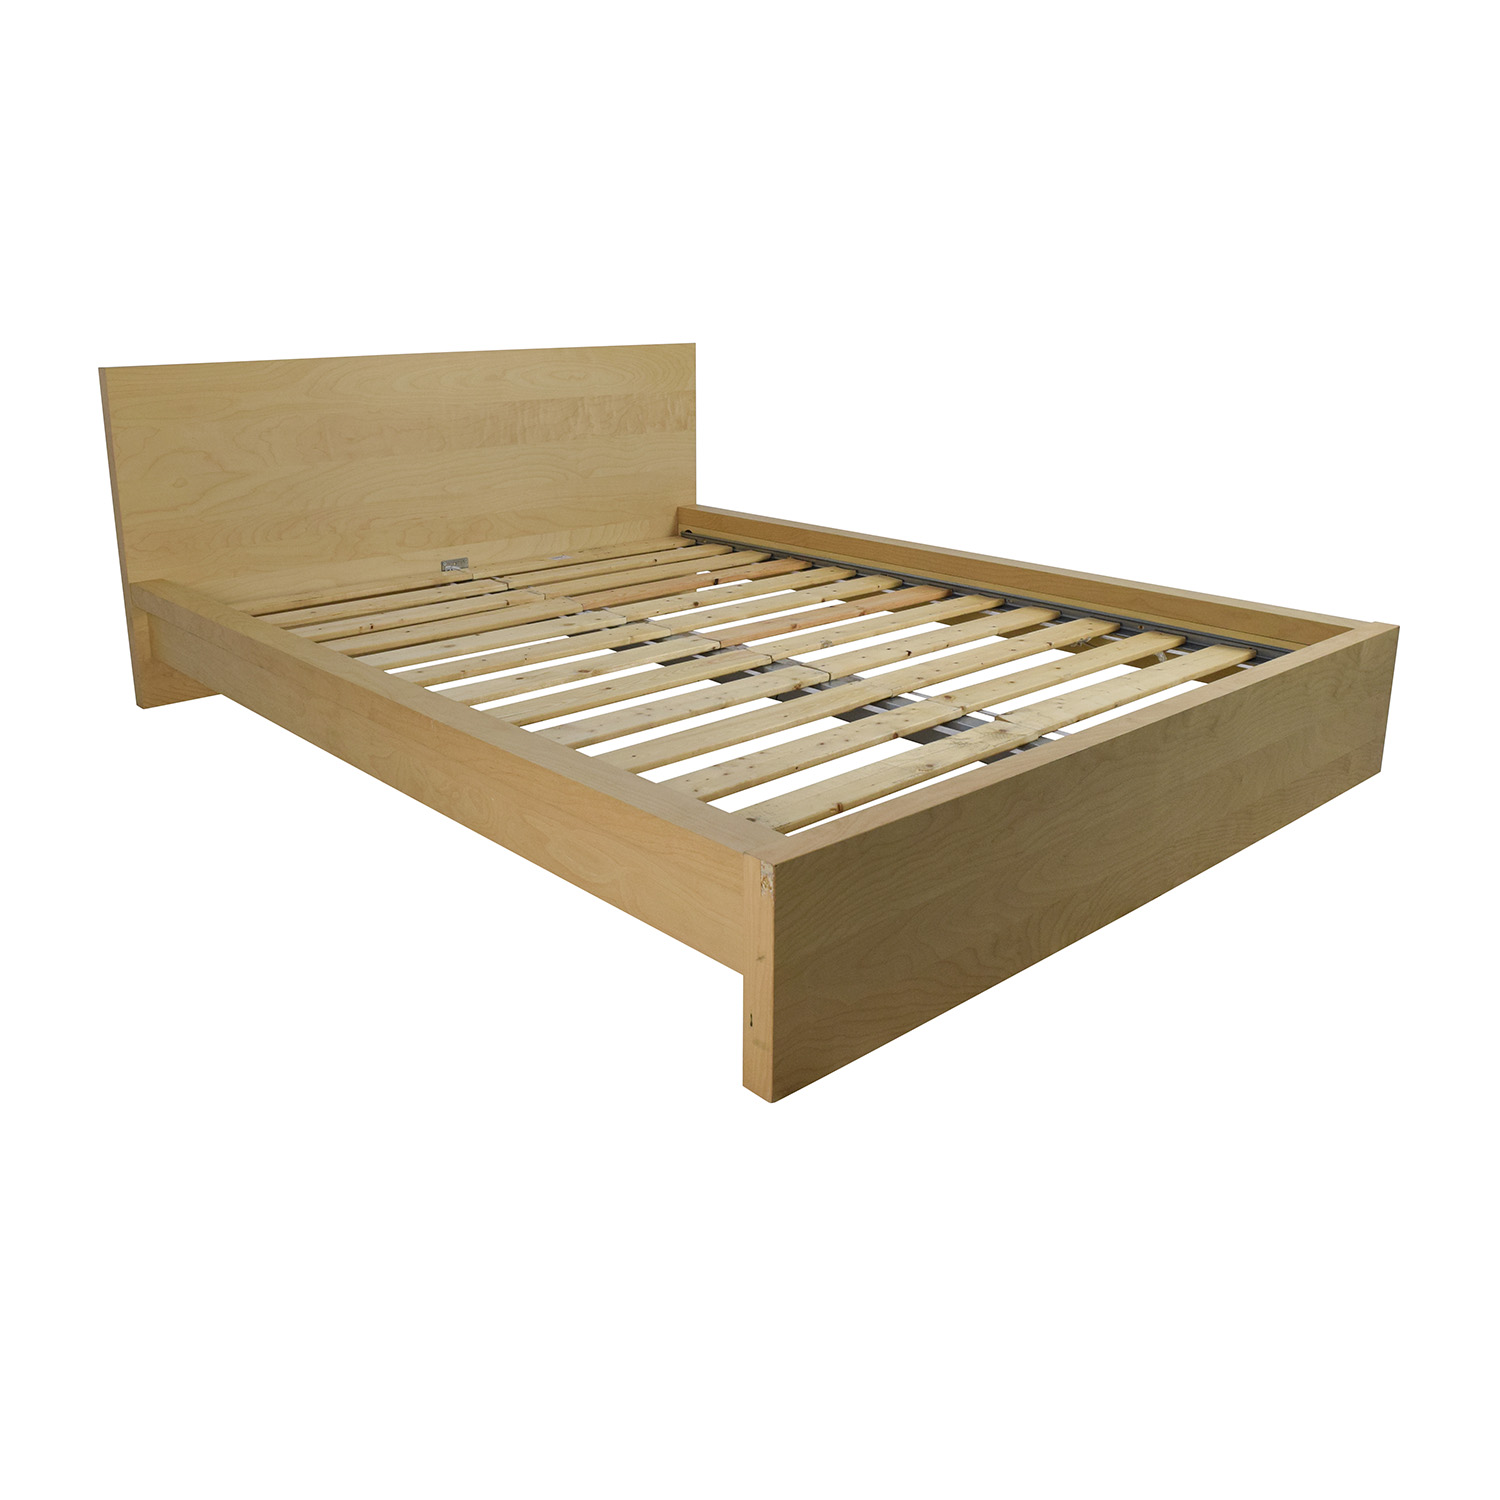 73379ae0b68 62% OFF - IKEA IKEA Sultan Queen Bed Frame   Beds